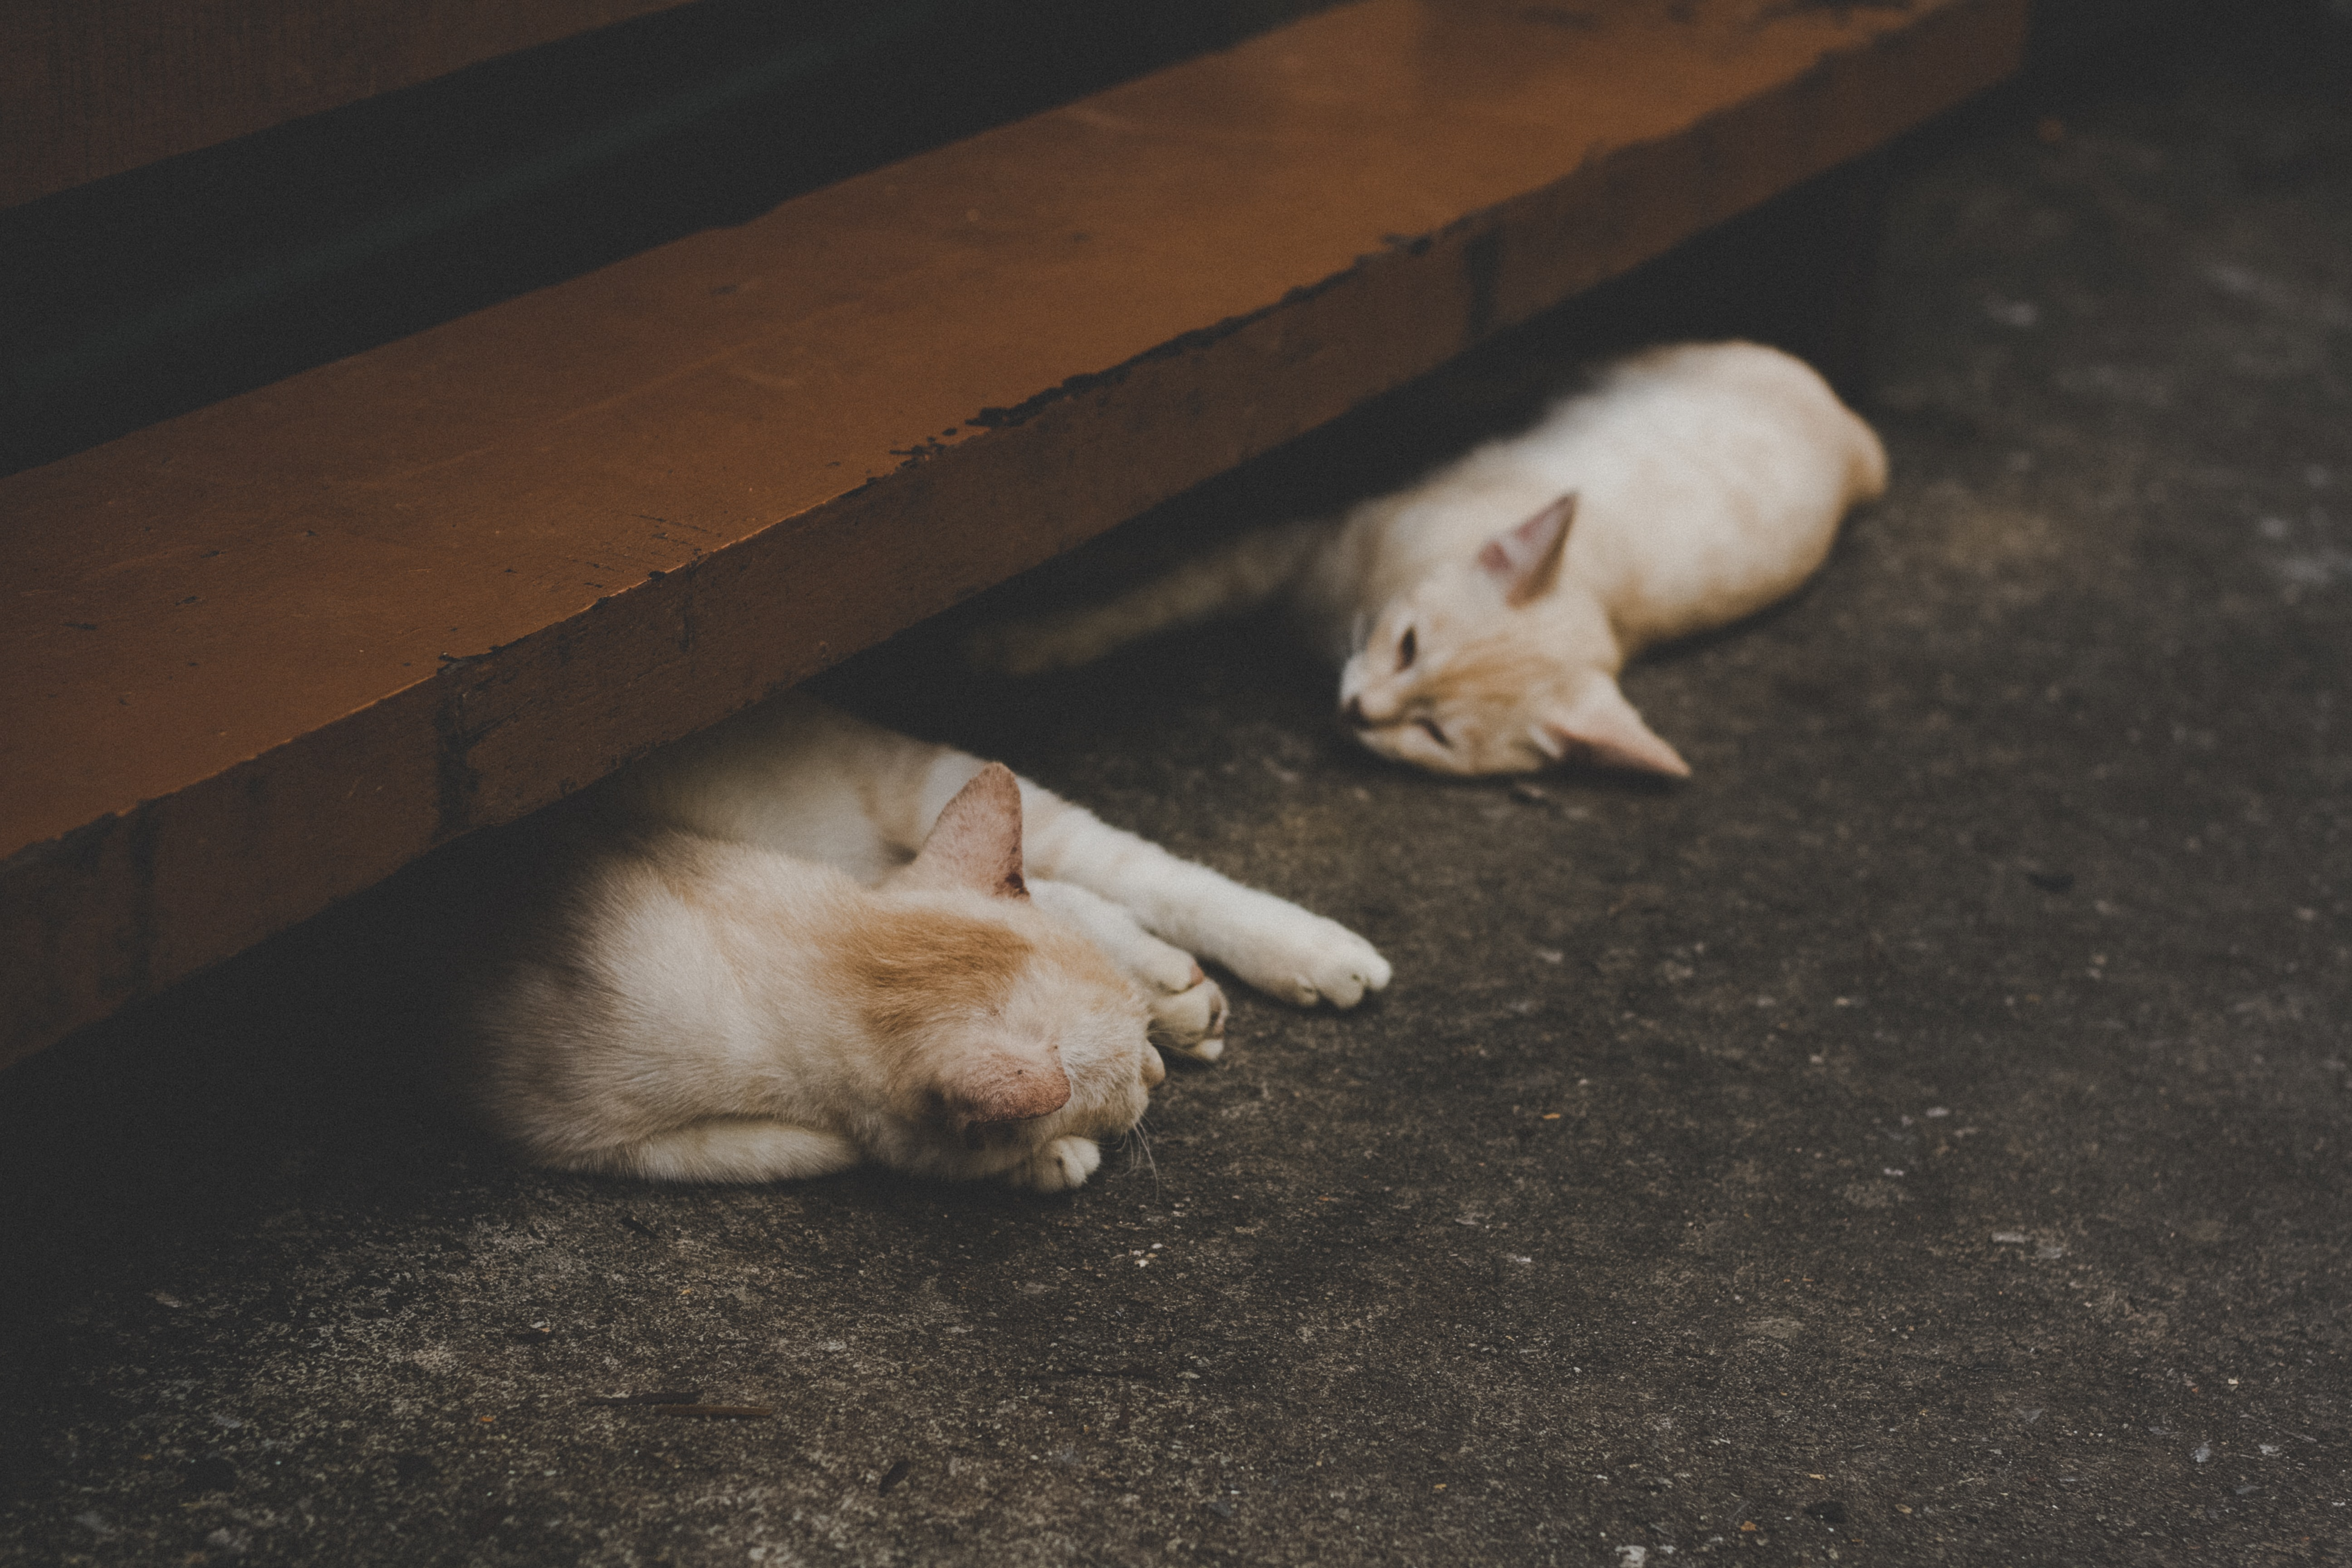 Two white cats napping under wooden stairs